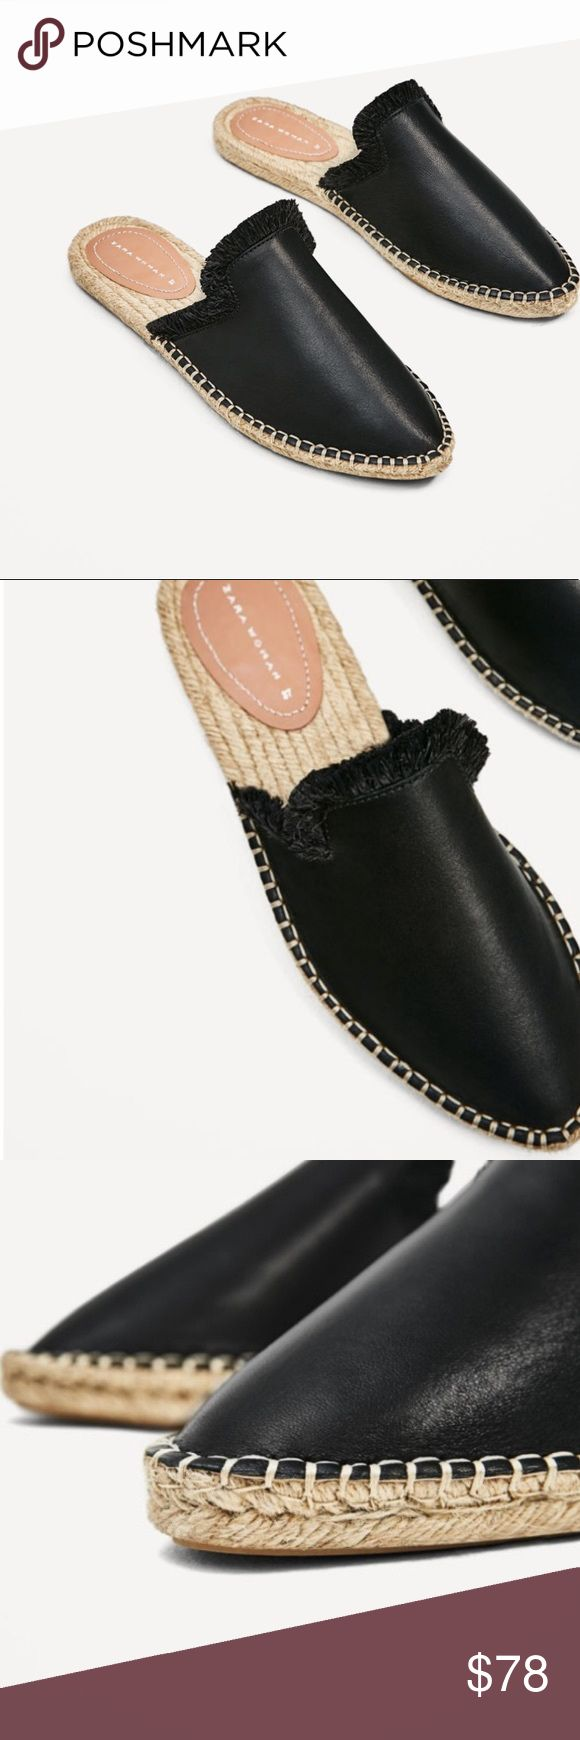 Zara Black Leather Mules Slide On Espadrille Shoes New with tags. Size 8. Sold out! Zara Shoes Mules & Clogs #ClogsShoesWinter